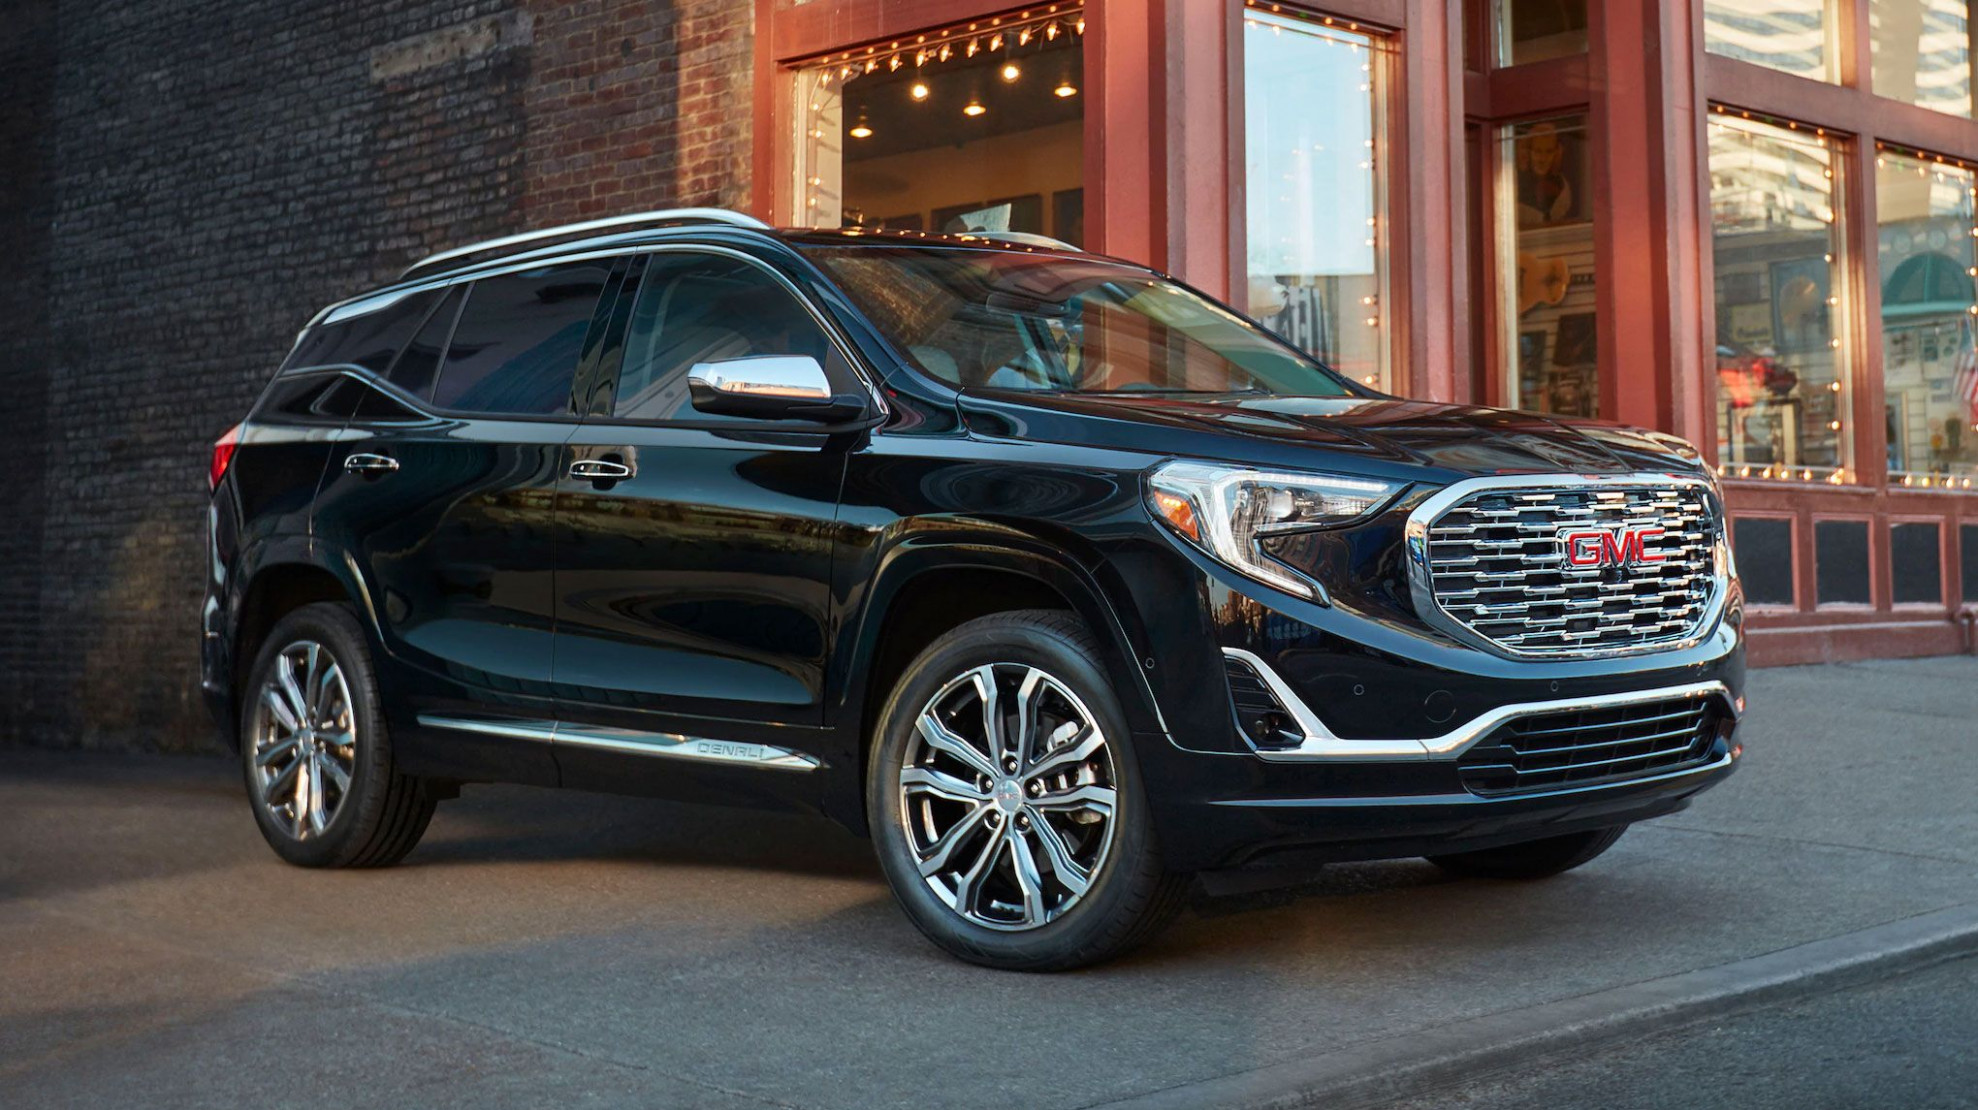 8 GMC Terrain Review, Pricing, and Specs - 2020 gmc suv